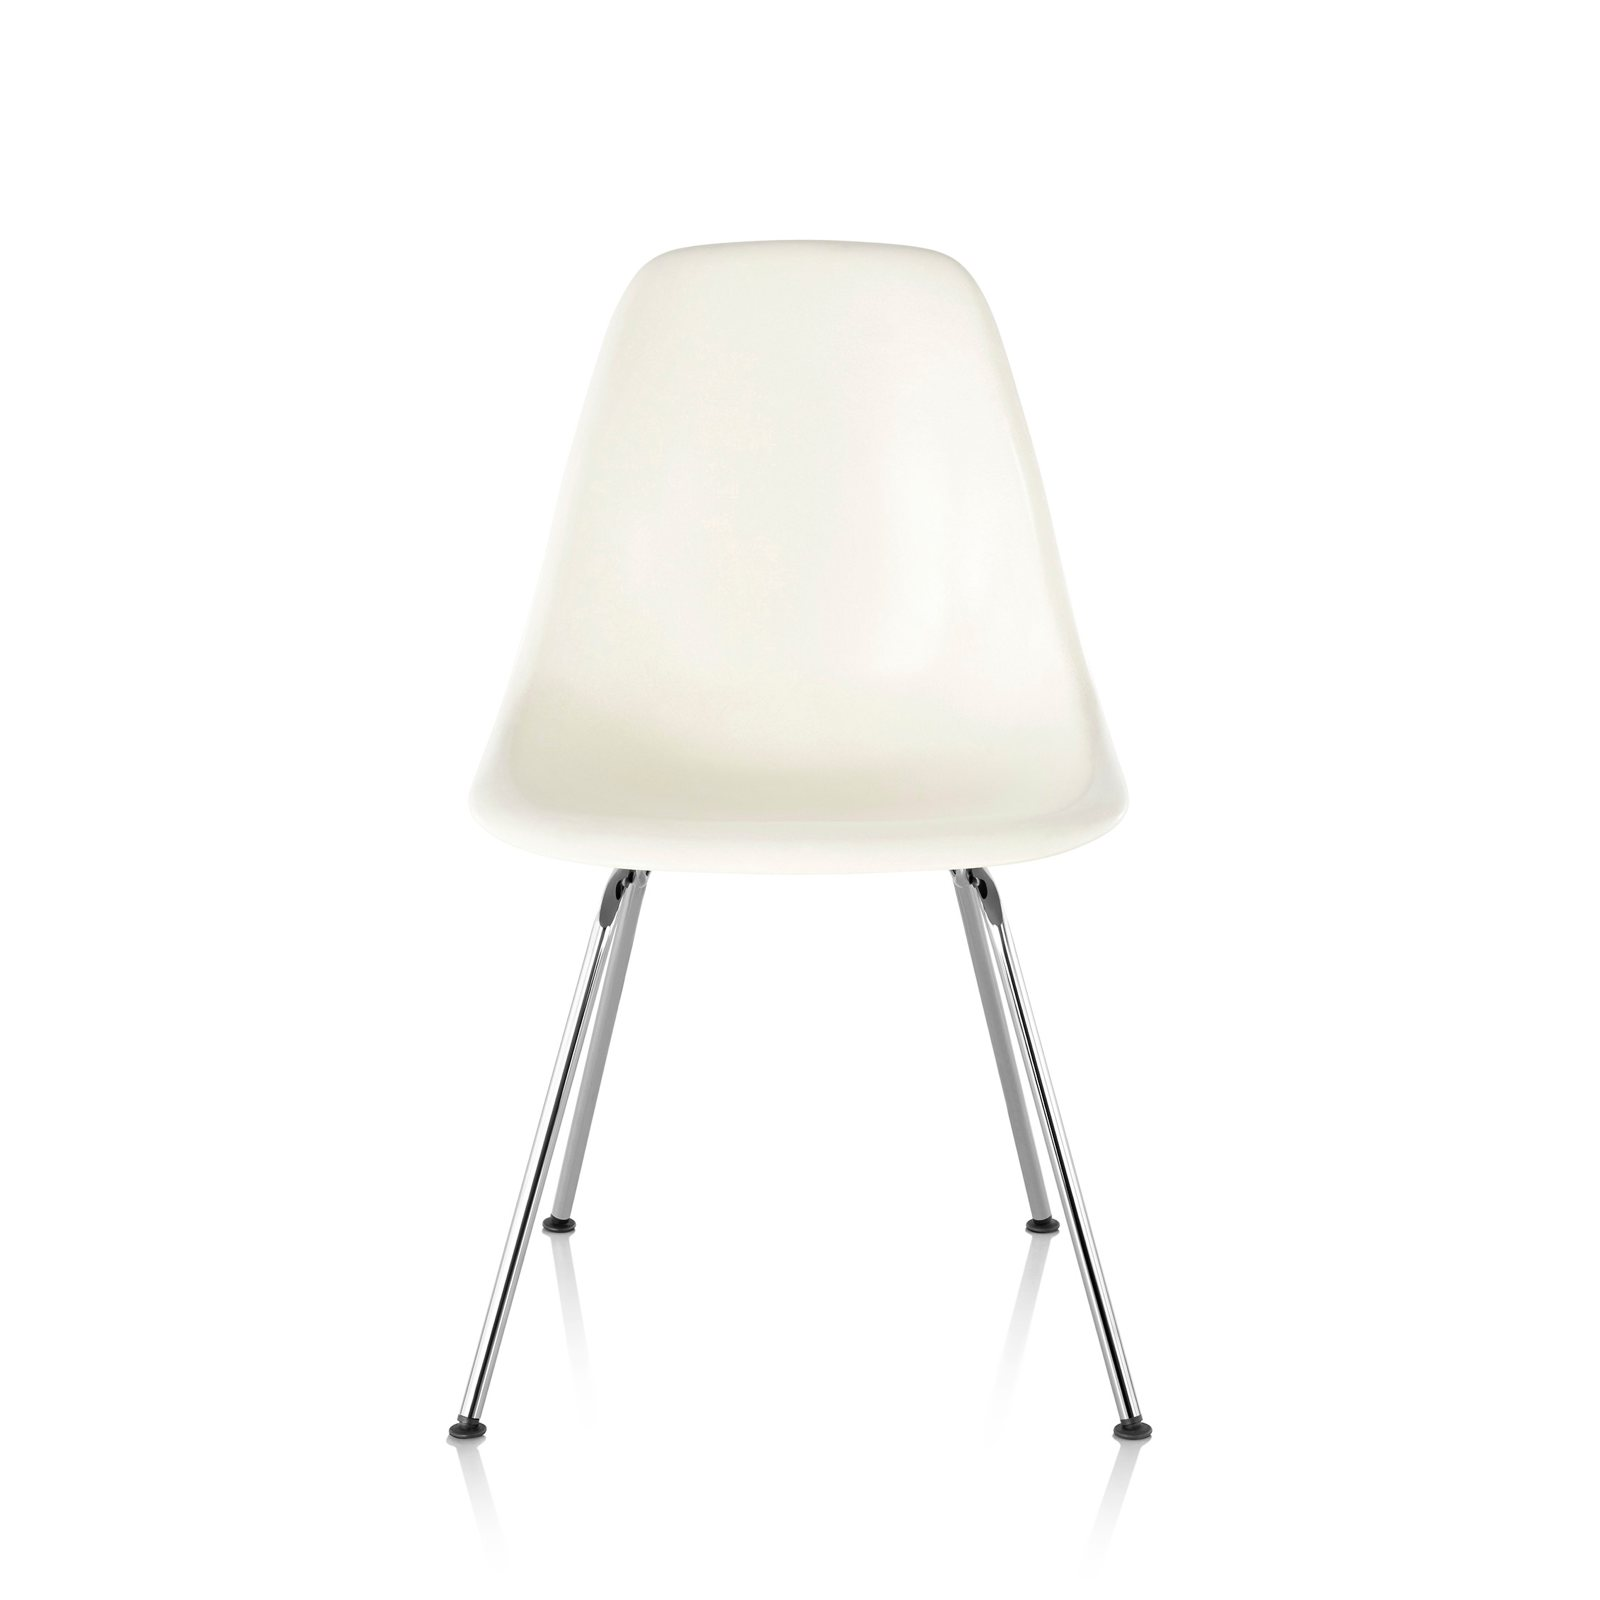 Eames Molded Plastic Side Chair 4 Leg Base by Charles & Ray Eames